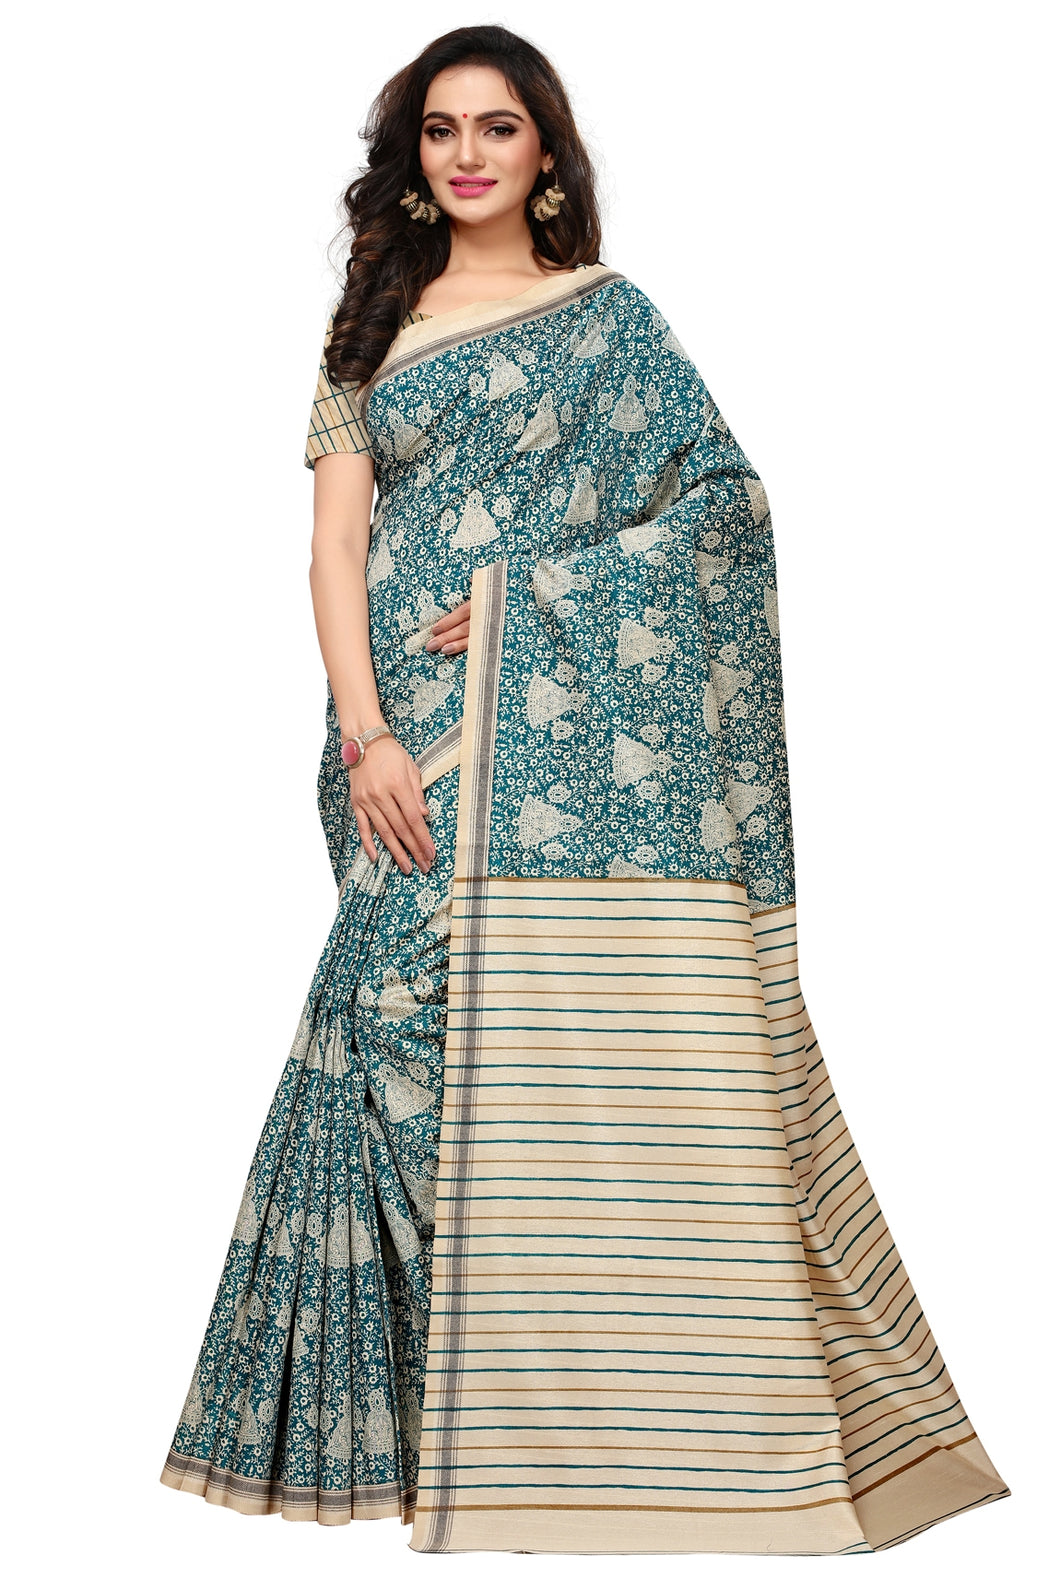 Bhelpuri Cream and Green Bhagalpuri Silk Printed Saree with Bloue Piece